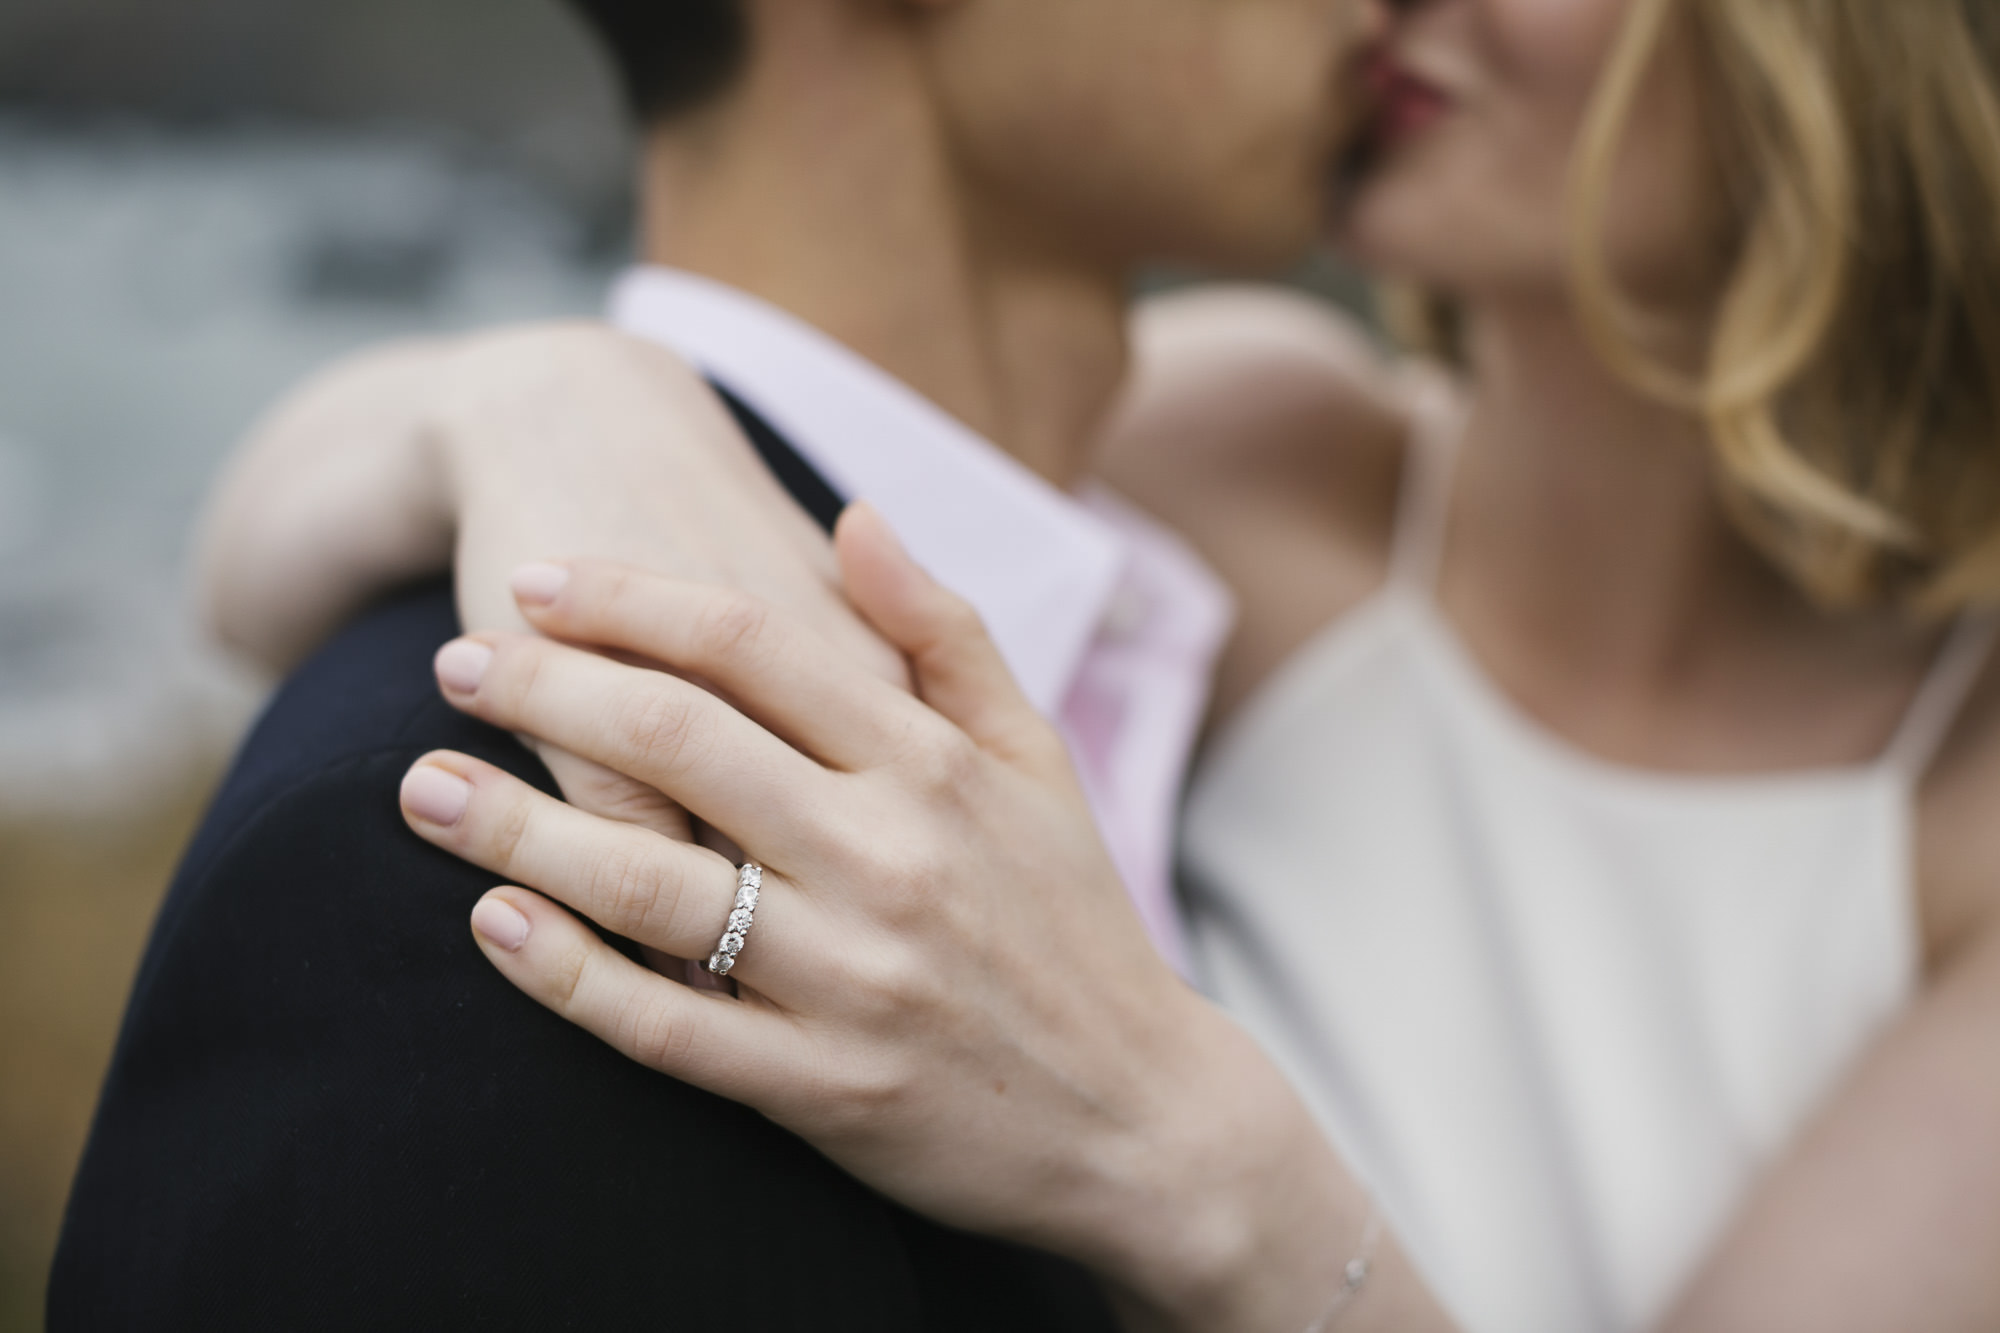 Women kisses her fiancé while showing off her ring